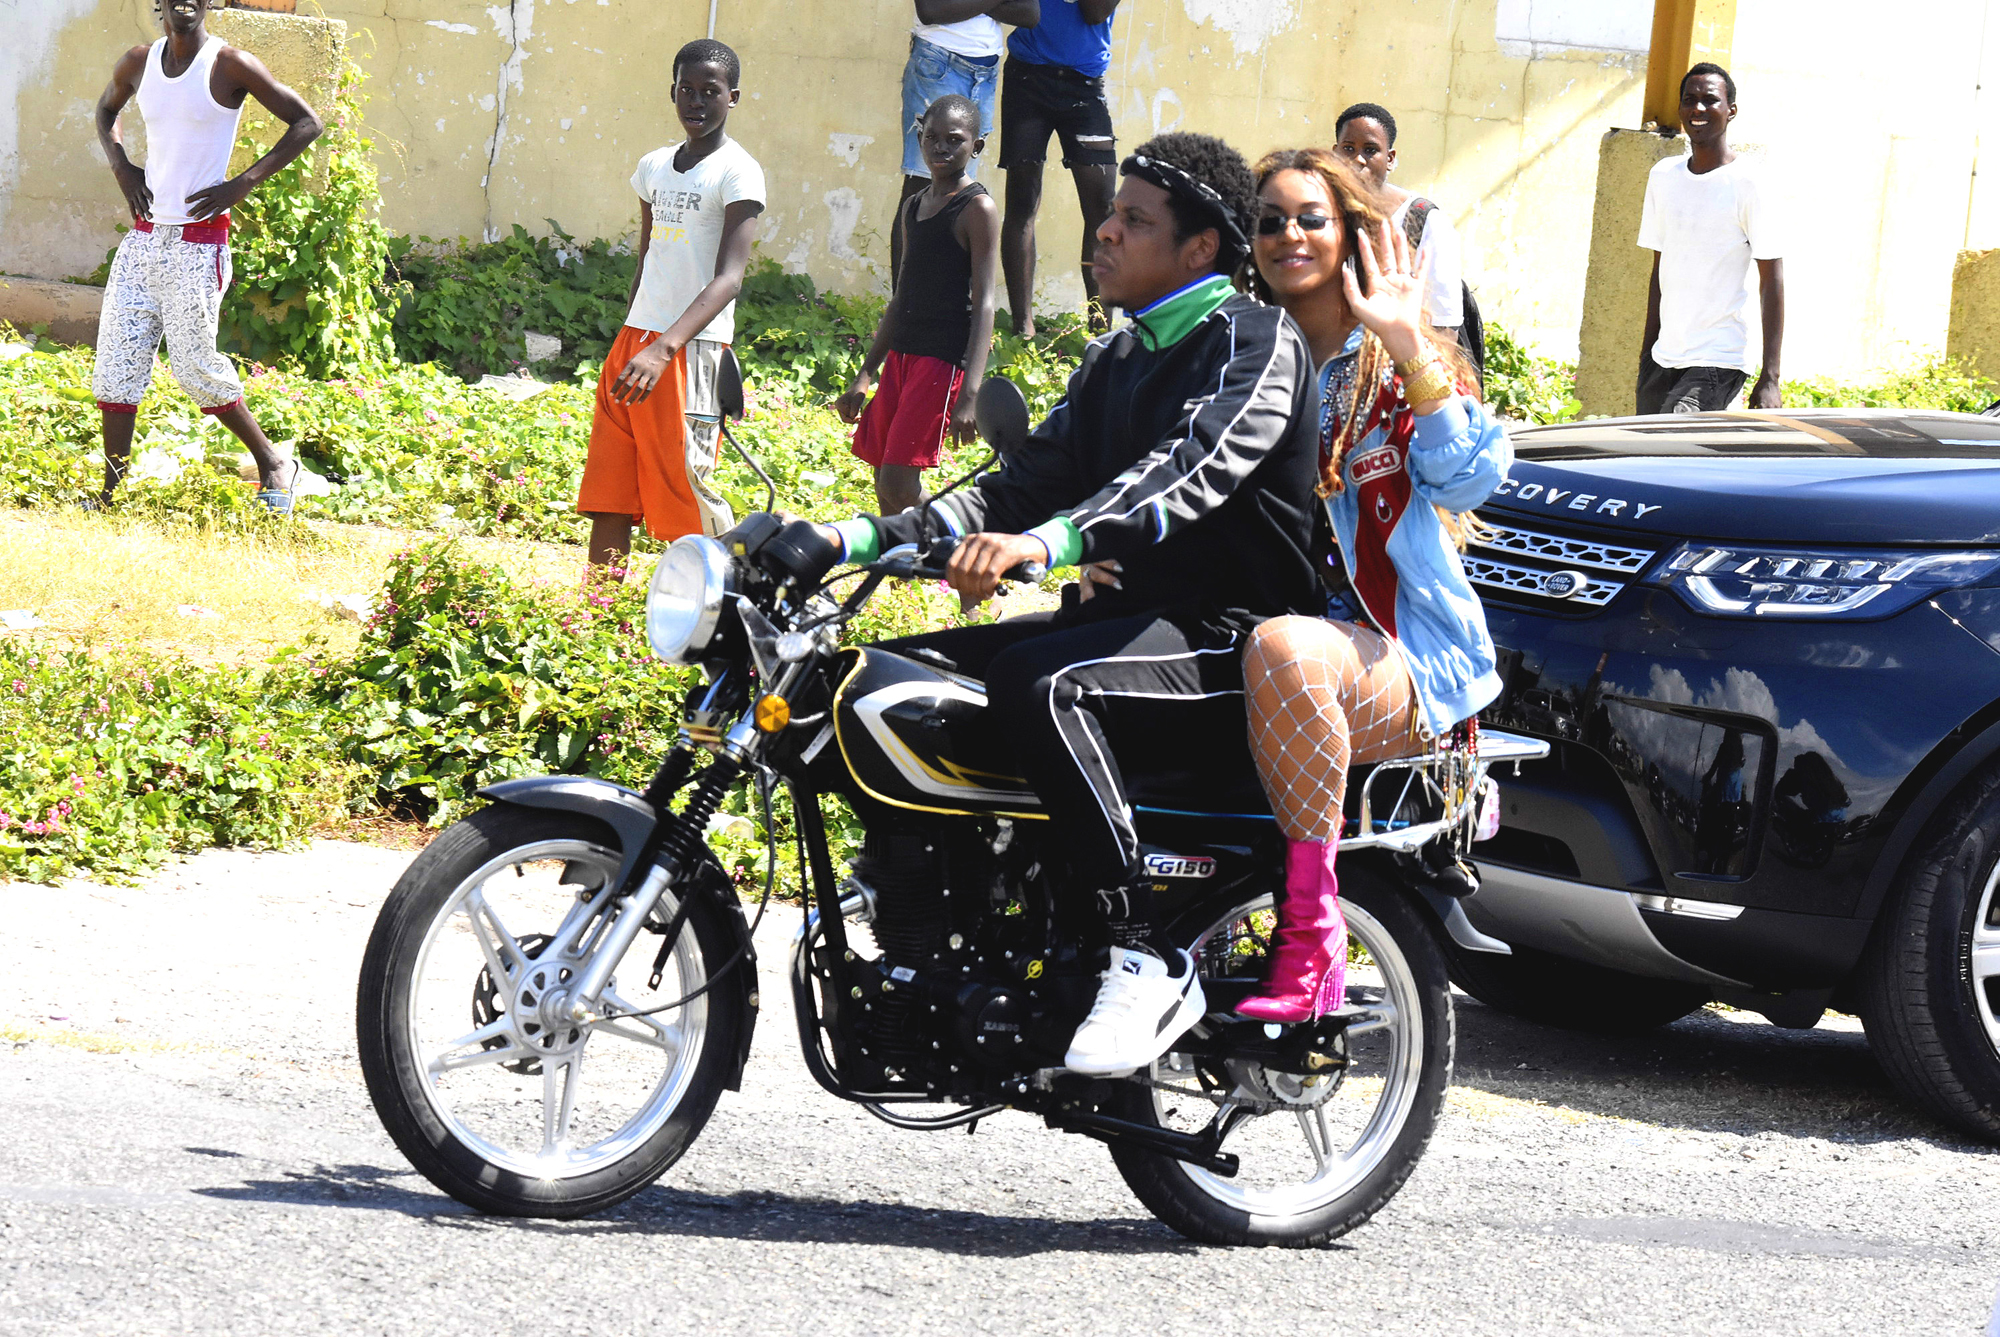 EXCLUSIVE: **PREMIUM EXCLUSIVE RATES APPLY**Jay-Z and Beyonce spotted shooting a video in Bob Marley's old stomping ground in Kingston.